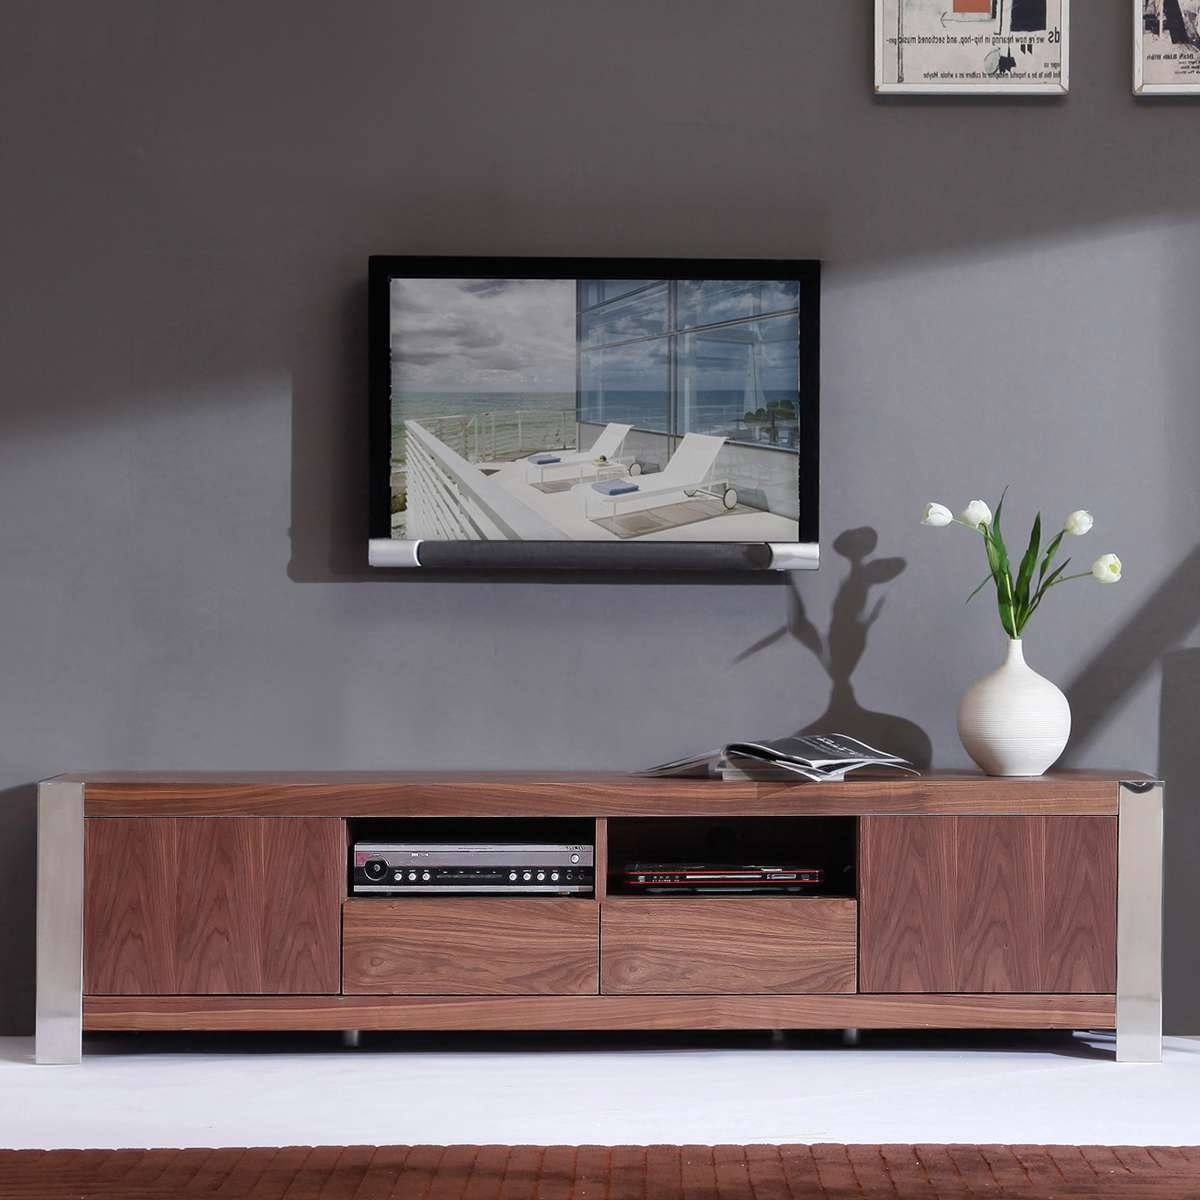 Regaling Tv Stand Cabinet Electric Fireplace Plus Wenge Furnitech In Low Profile Contemporary Tv Stands (View 8 of 15)